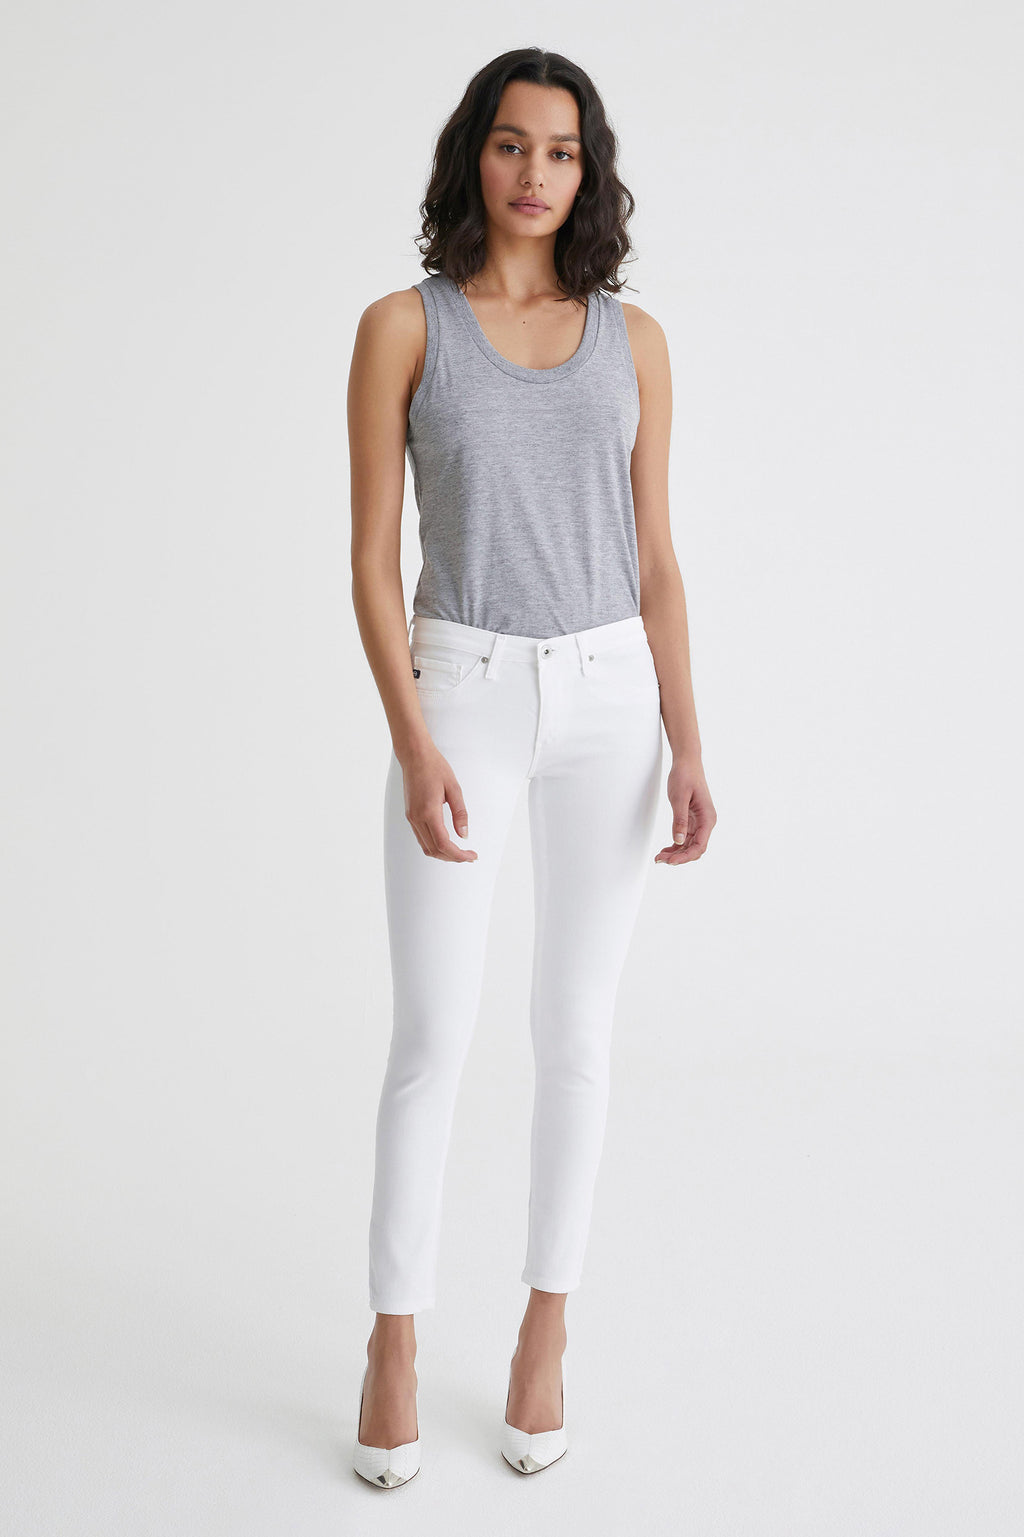 AG Jeans - Legging Ankle Pants online at PAYA boutique